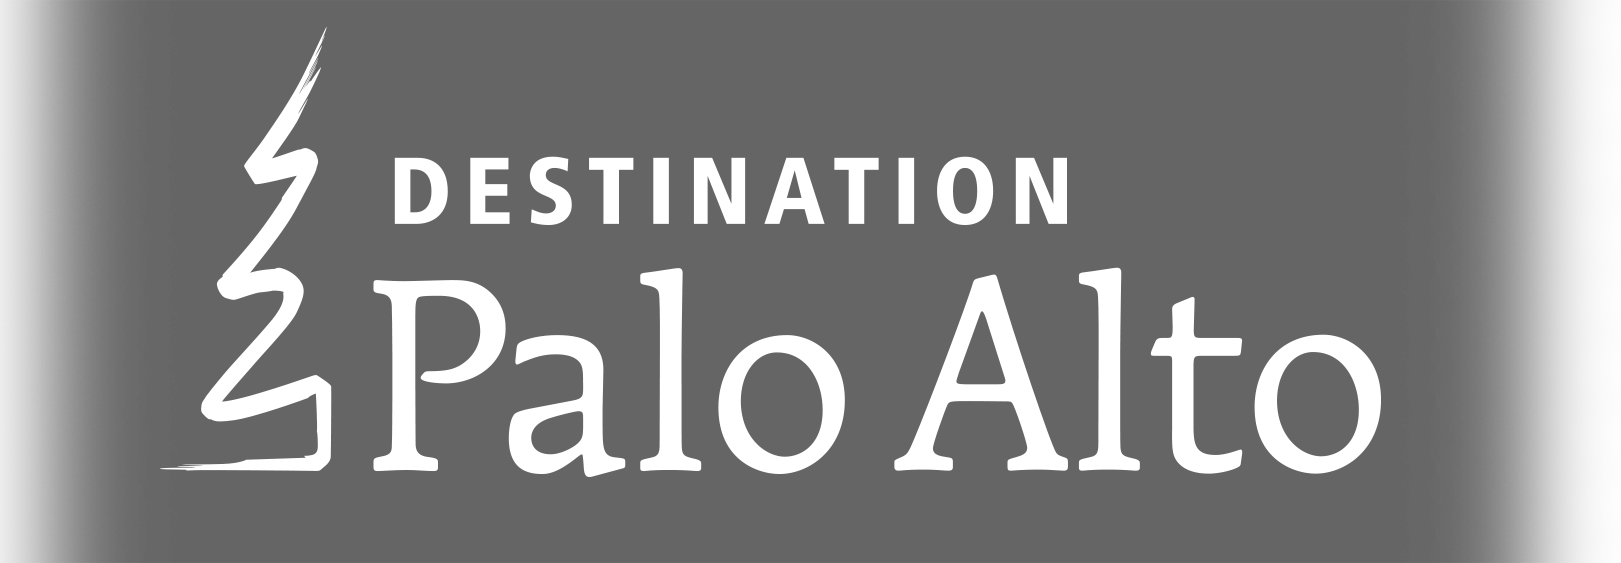 Lodging - Destination Palo Alto